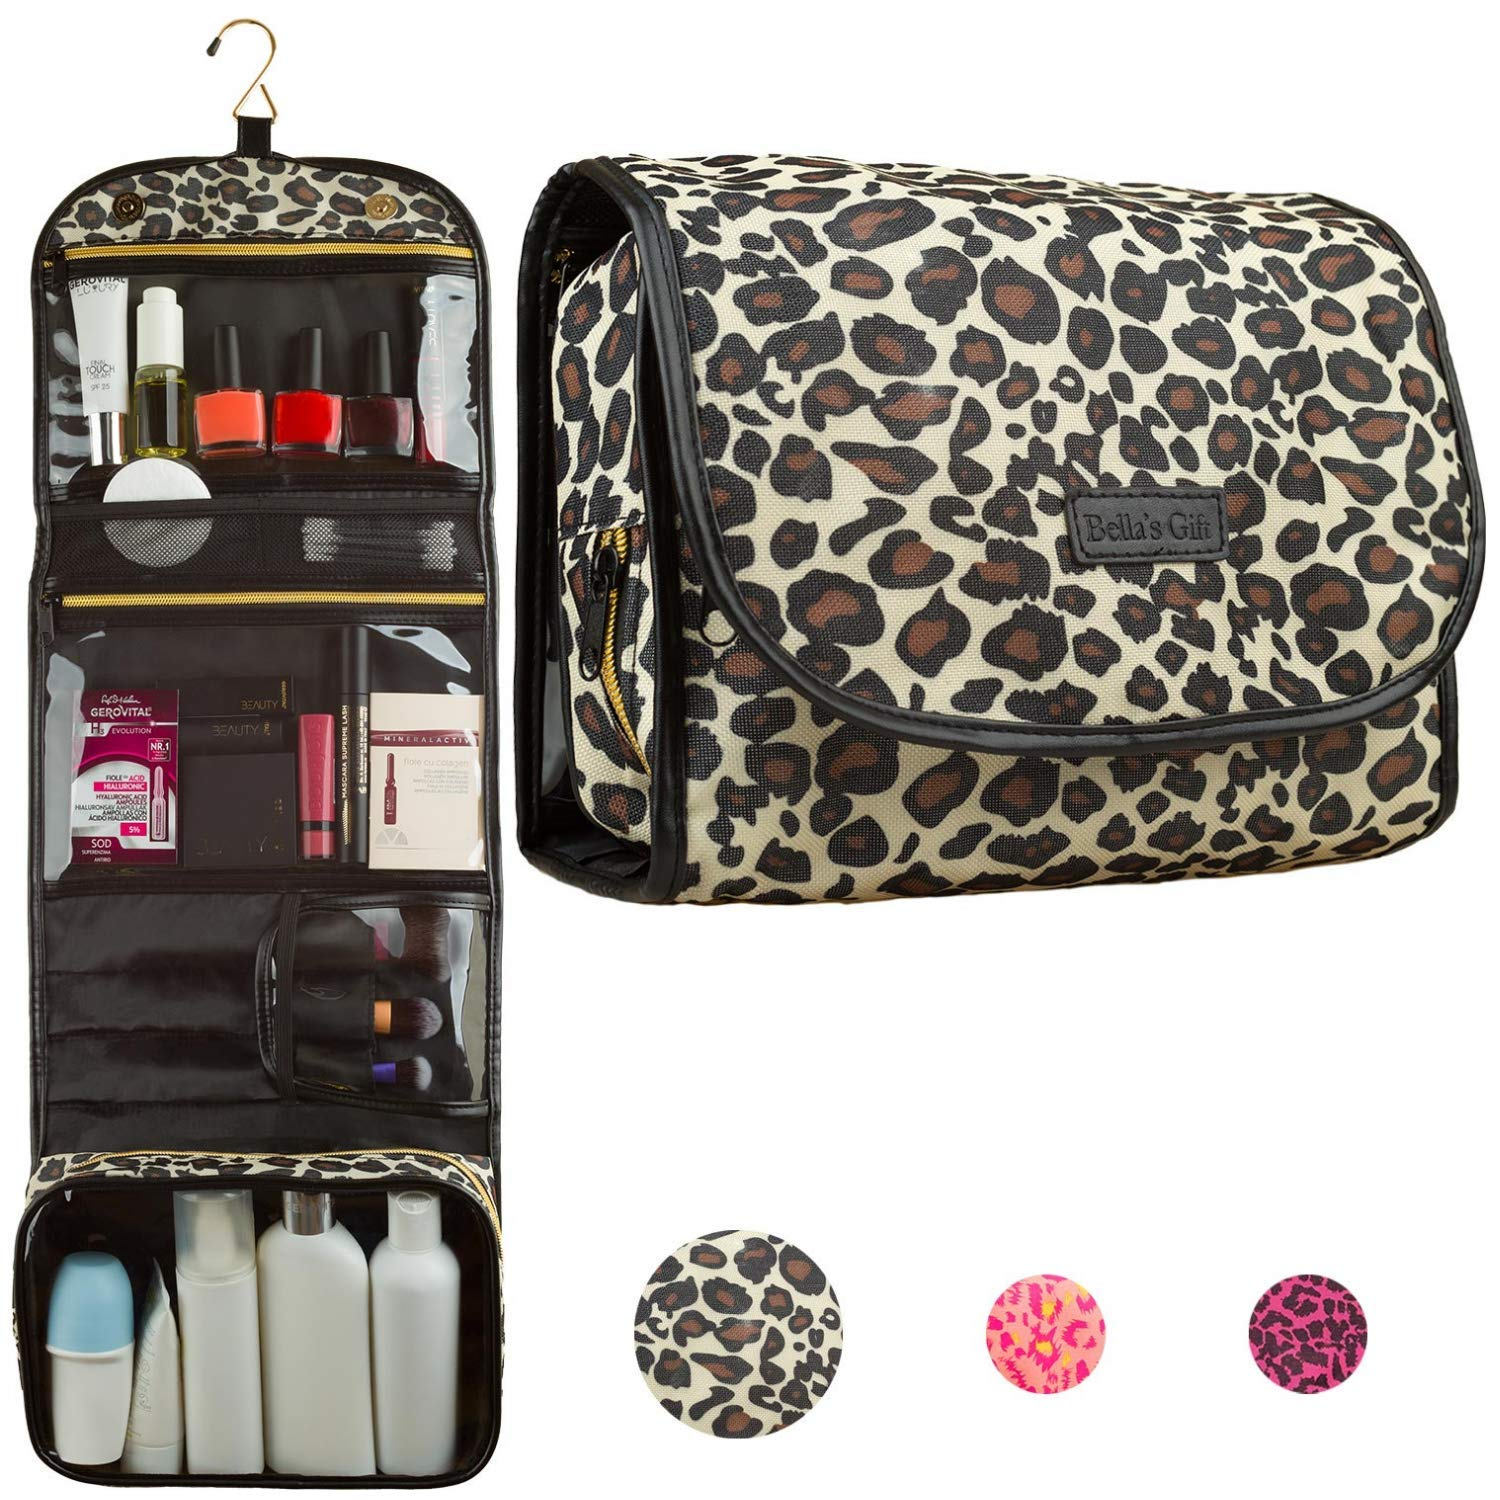 Hanging Travel Toiletry Bag - Cosmetic Make Up Kit - Bathroom Shower Organizer for Women and Girls - TSA Approved by Bella's Gift